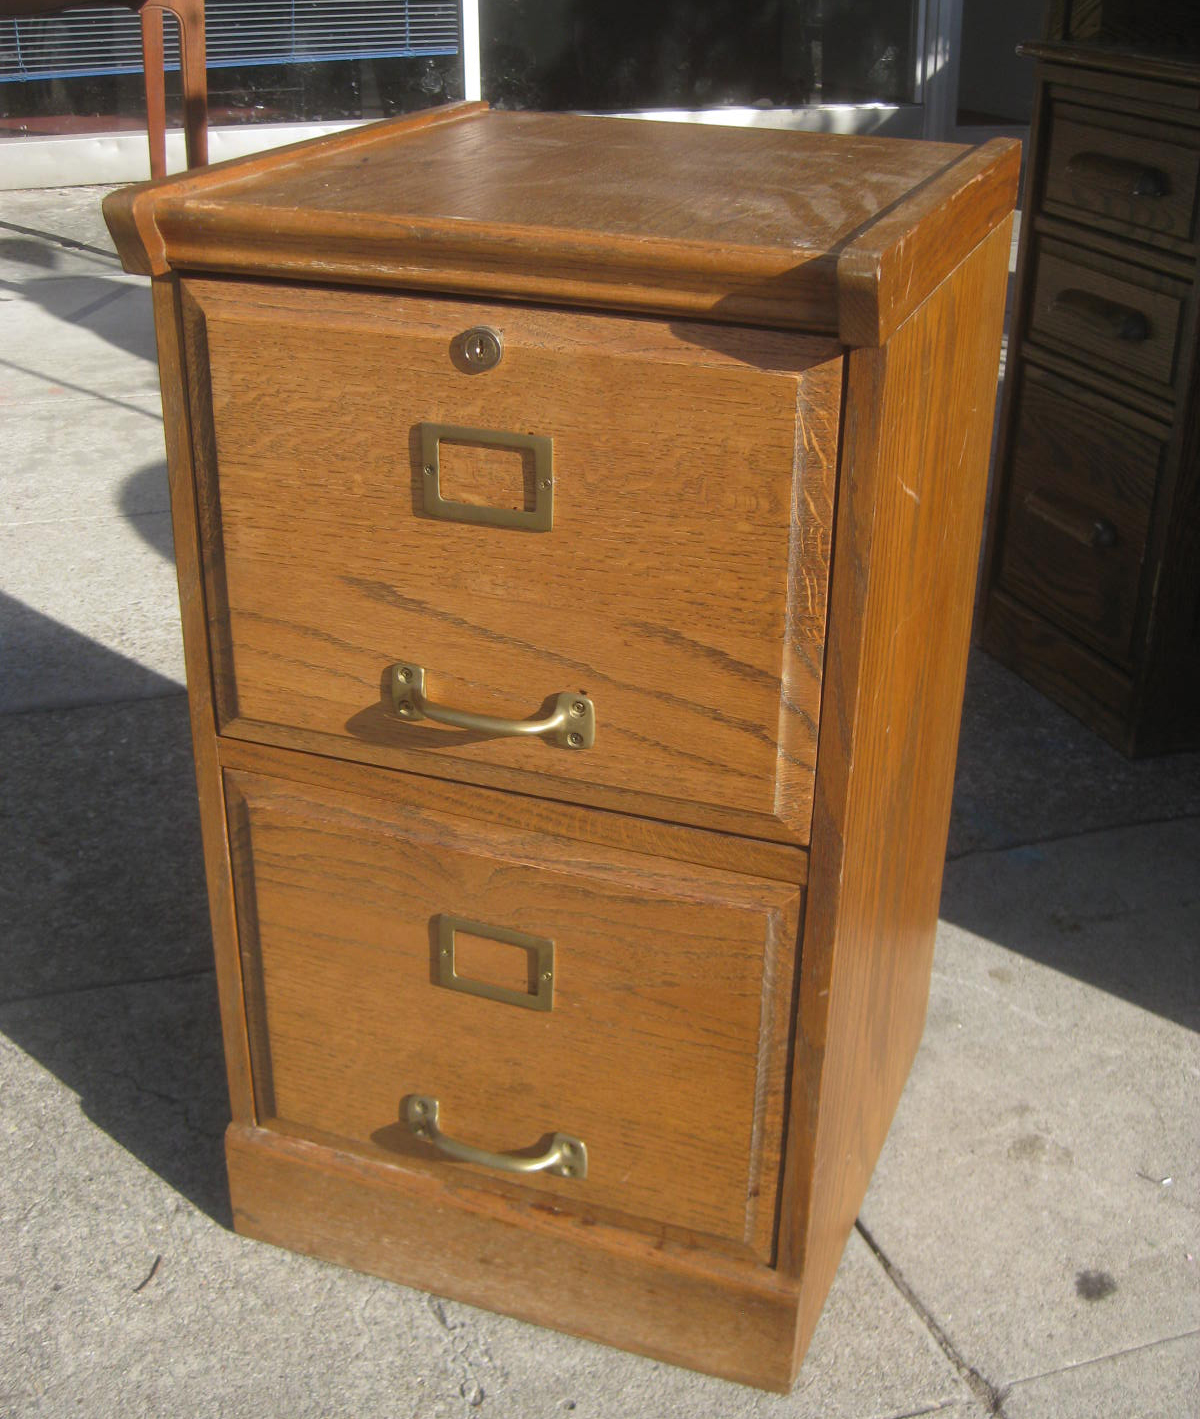 UHURU FURNITURE & COLLECTIBLES: SOLD - Oak 2-Drawer File Cabinet